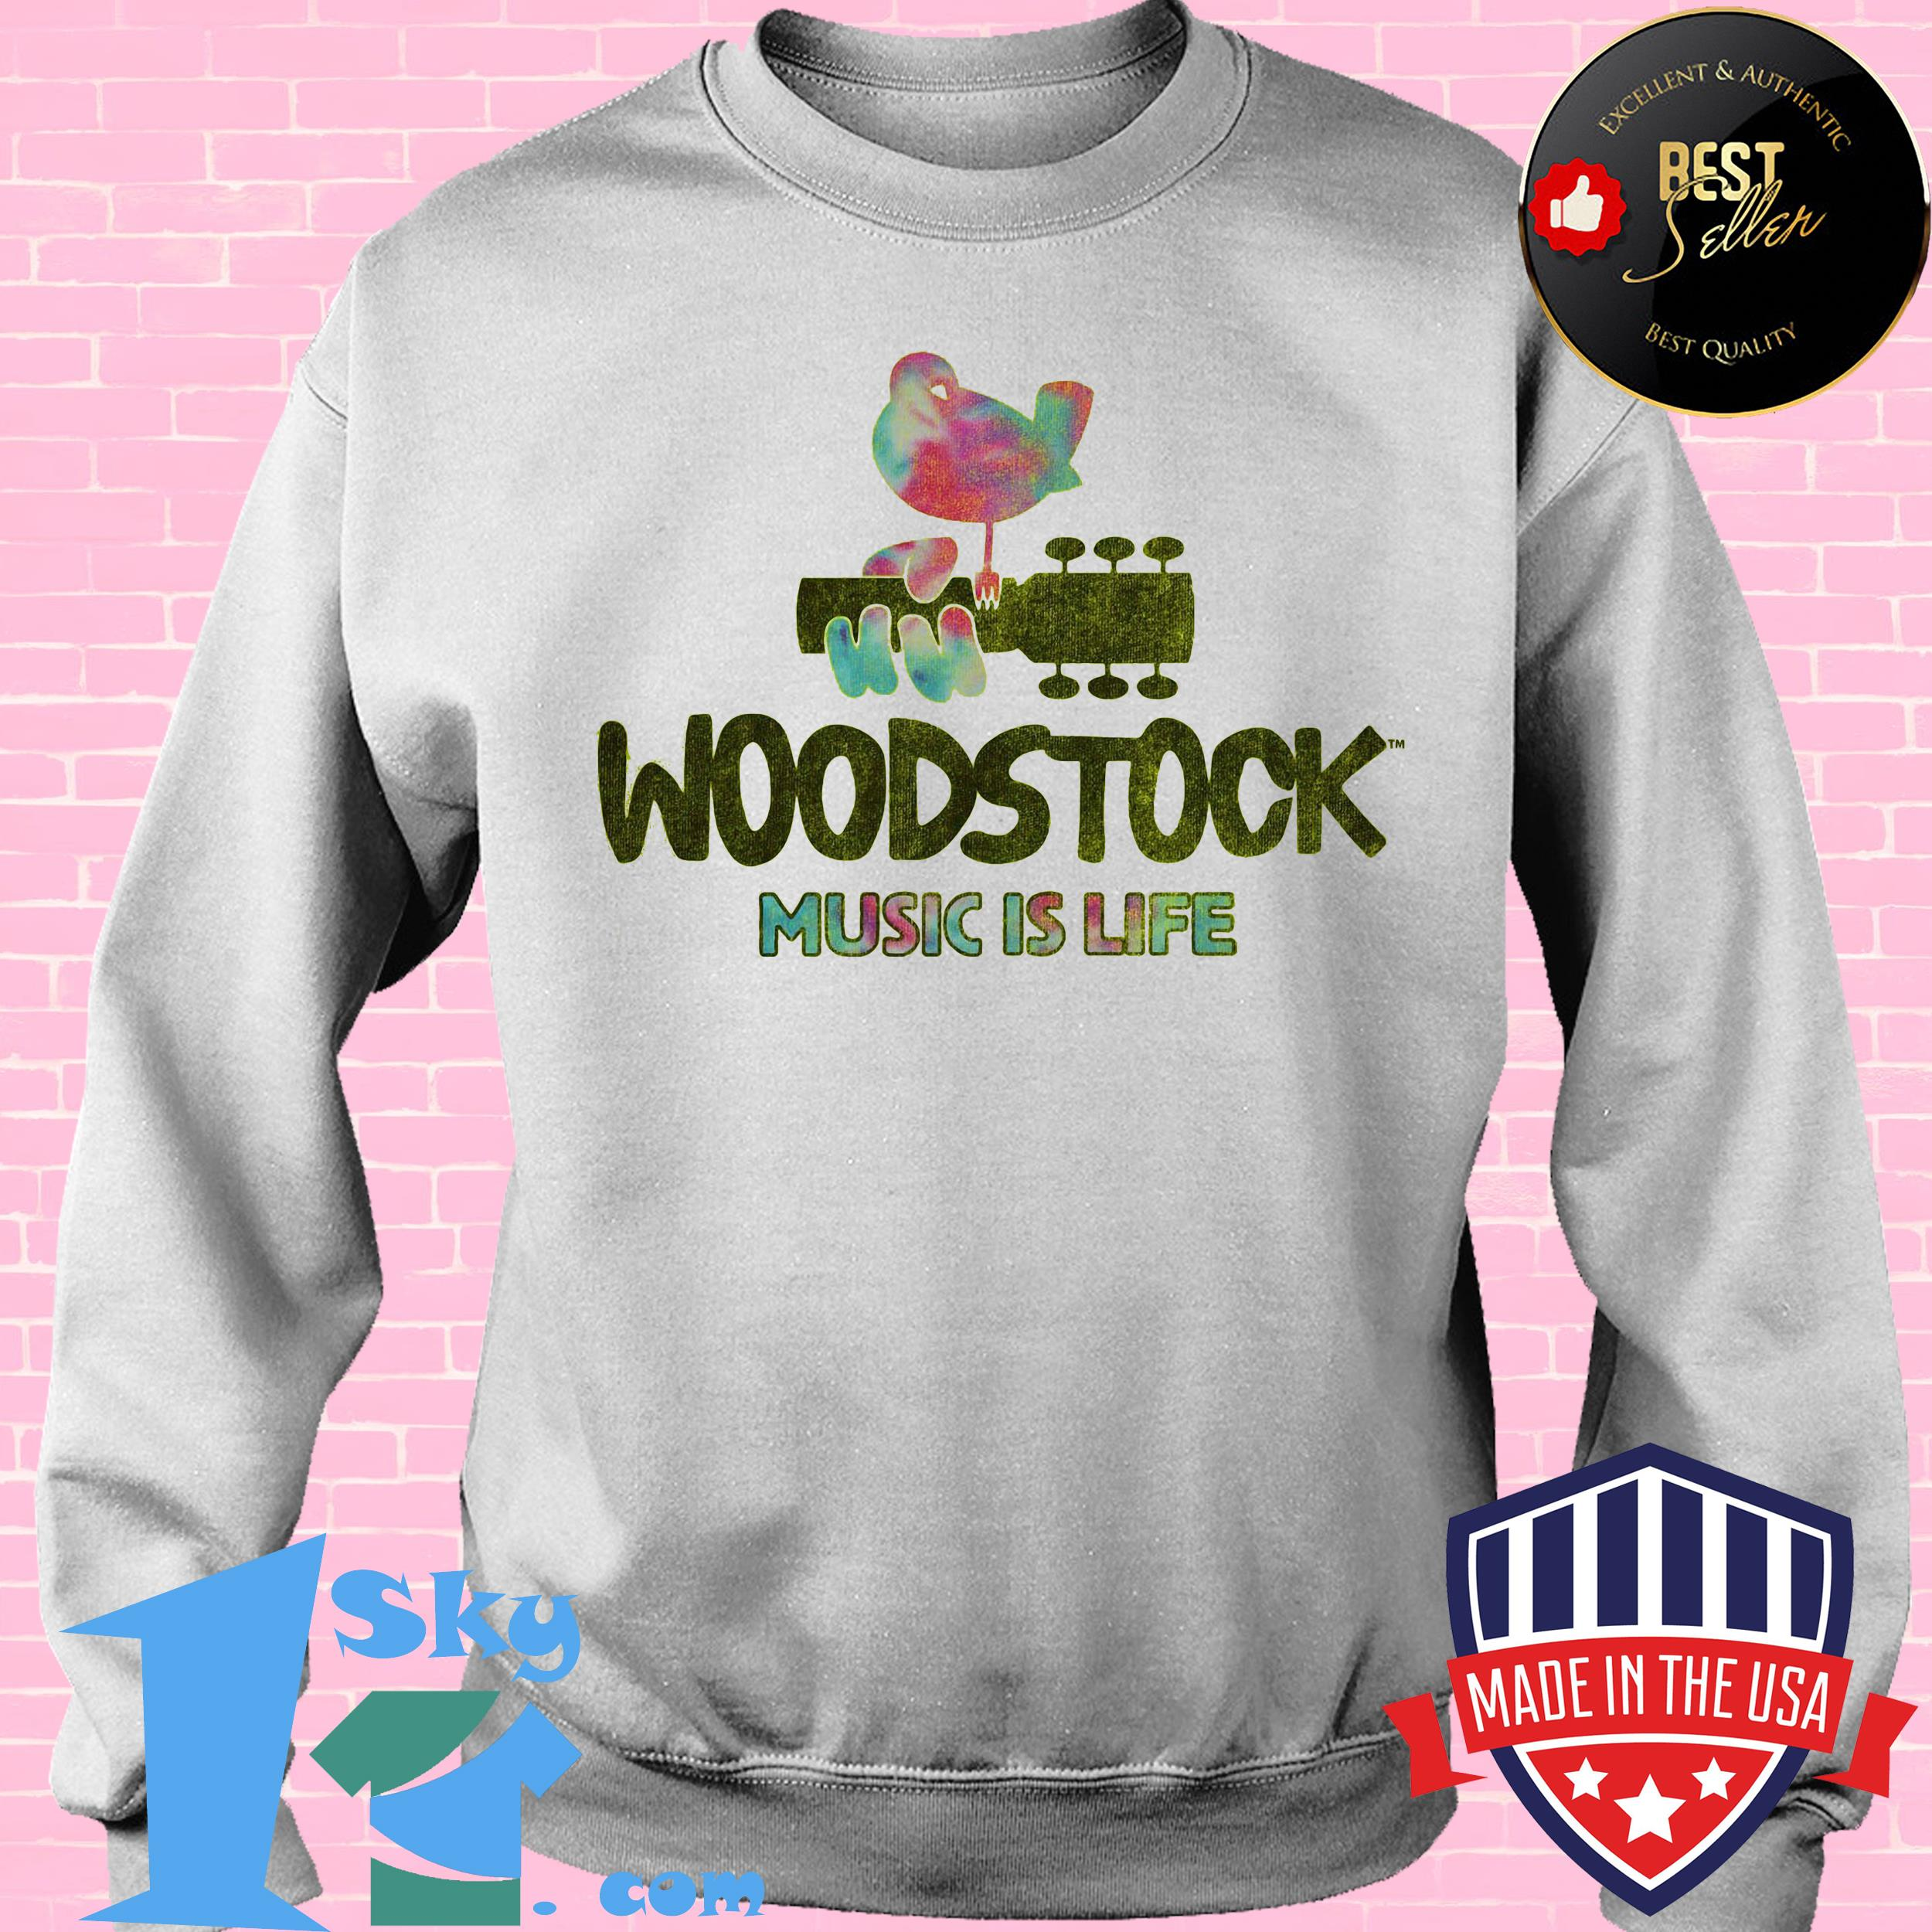 woodstock festival music is life bird sweatshirt - Woodstock Festival  Music is Life Bird Shirt